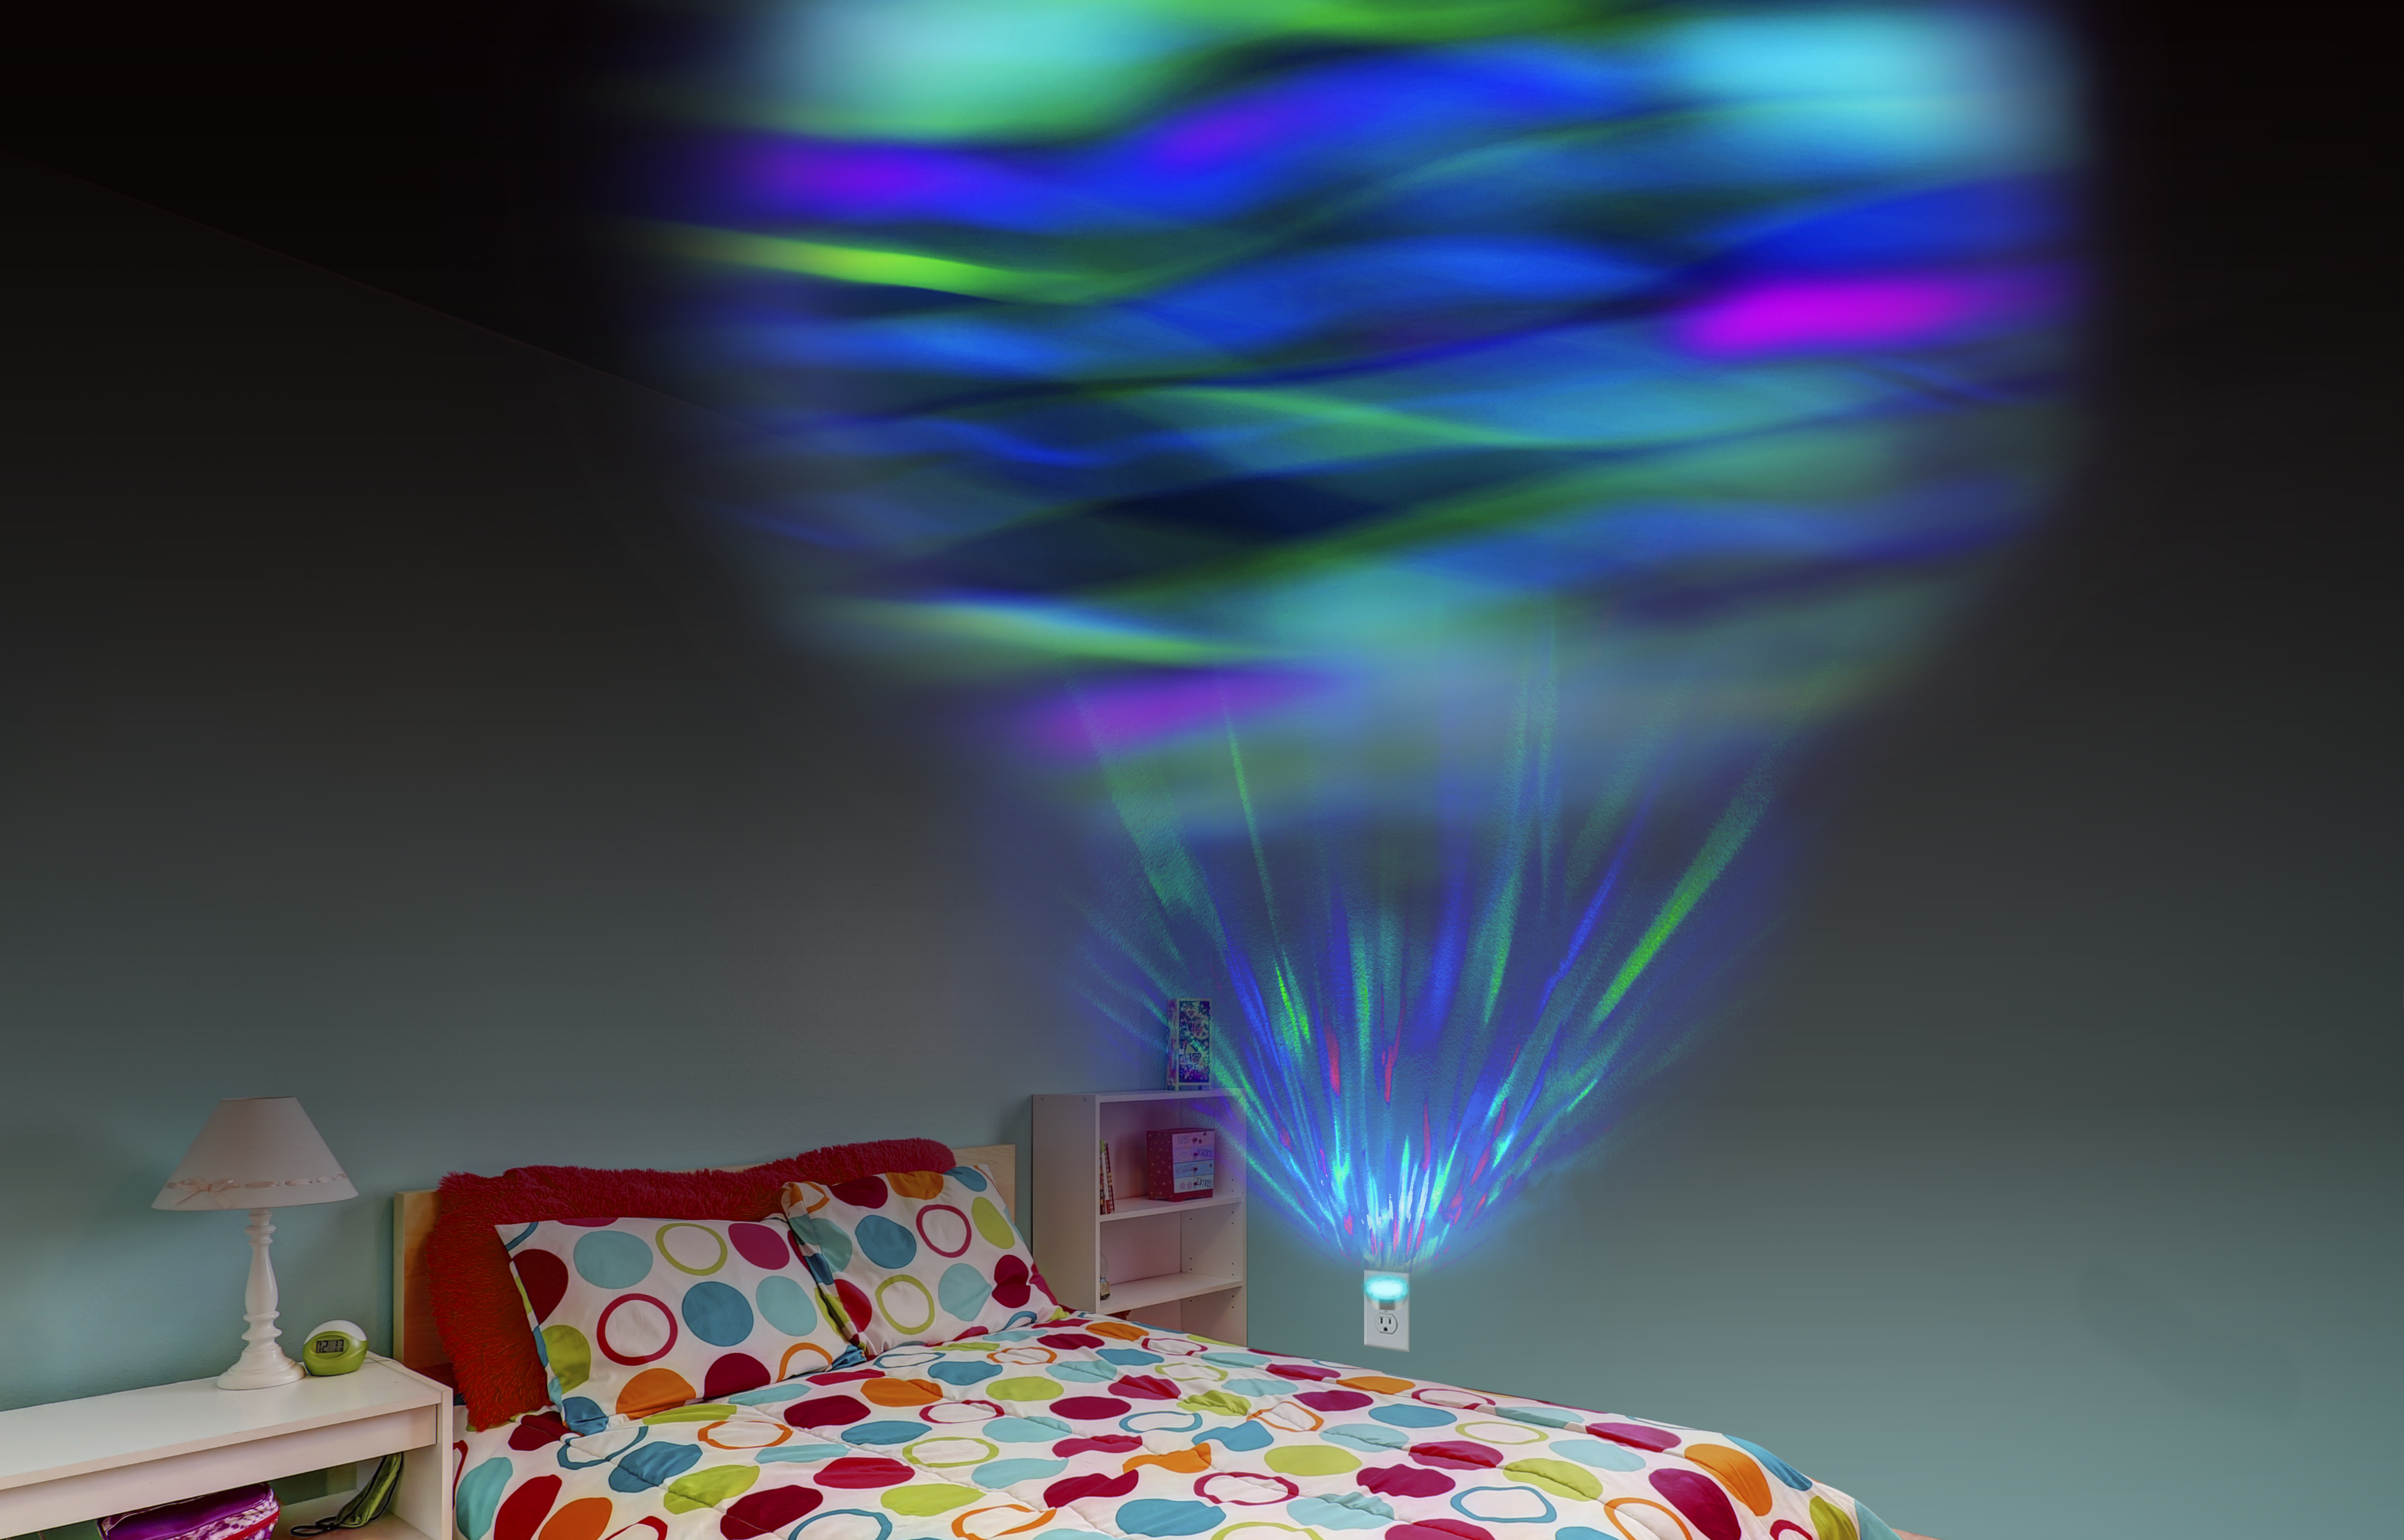 Space Nebula and the Northern Lights slowly move across a ceiling or wall to help promote sleep.